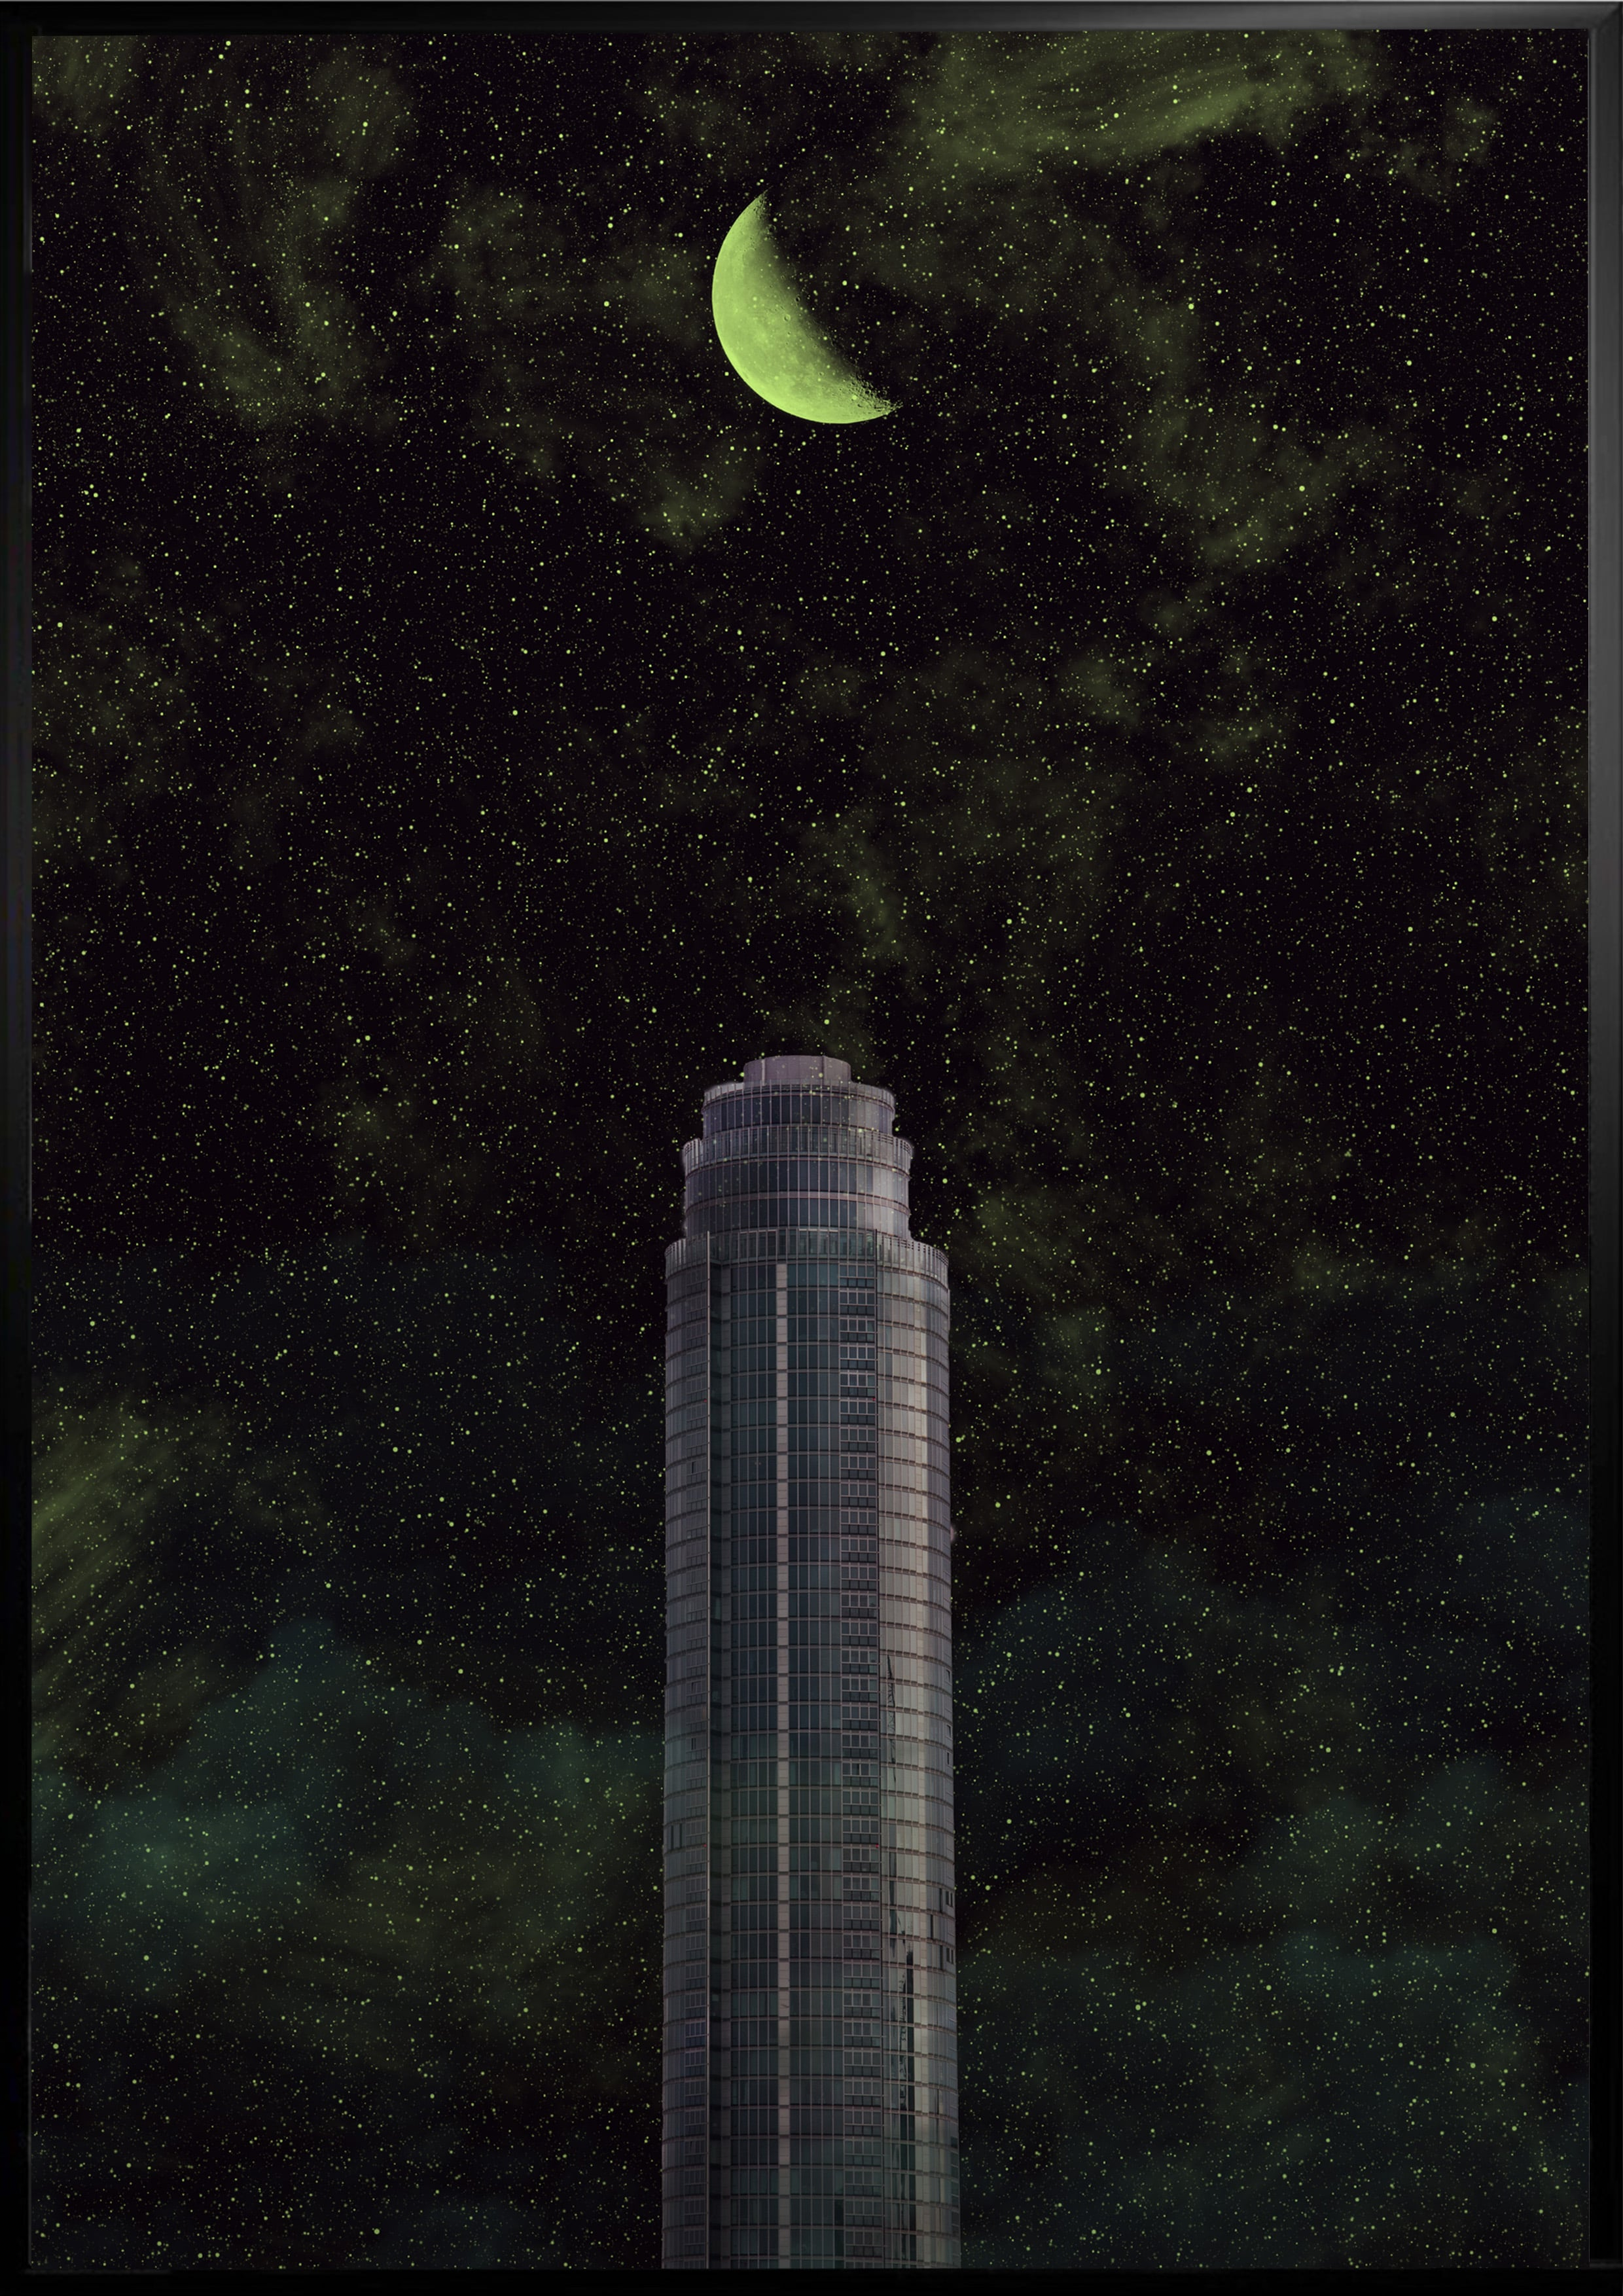 Space tower poster